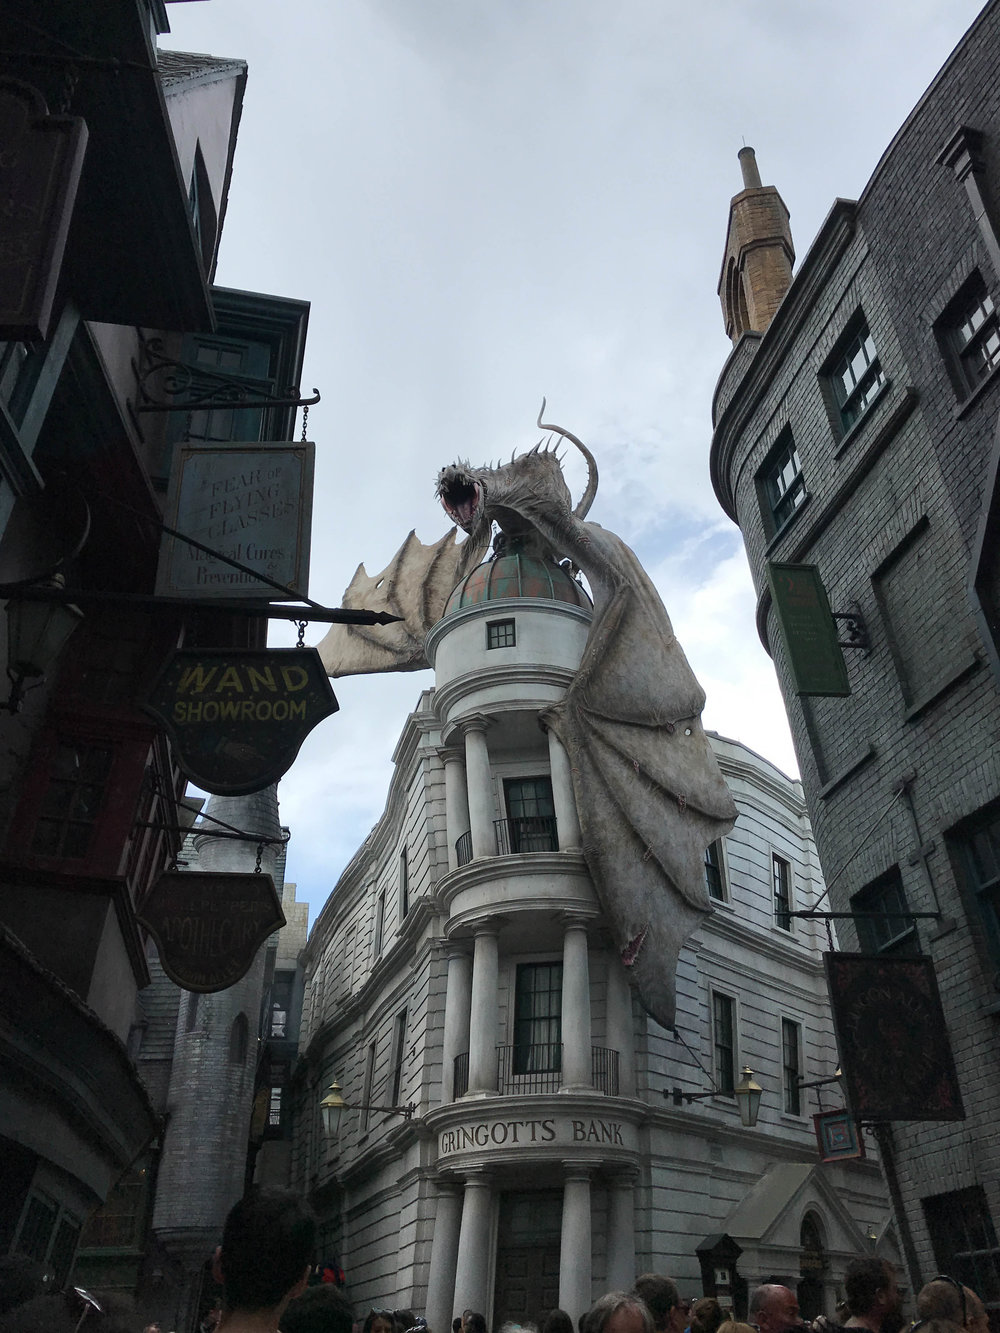 Escape from Gringotts at Diagon Alley